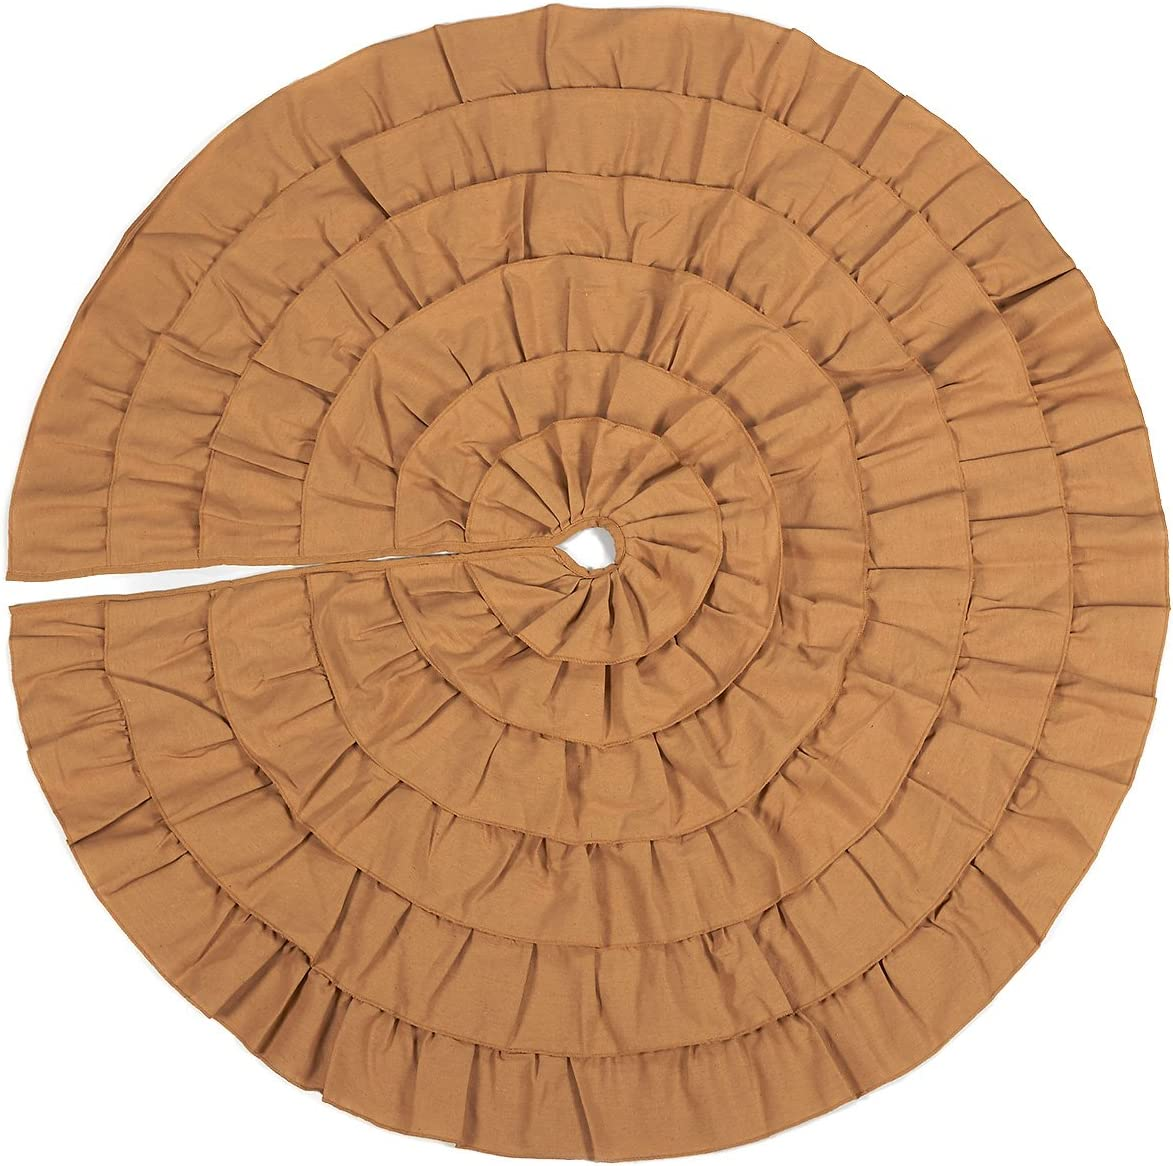 Tan Ruffle Christmas Tree Skirt with Ruffled Trim for Holiday Home Decor (50 in)